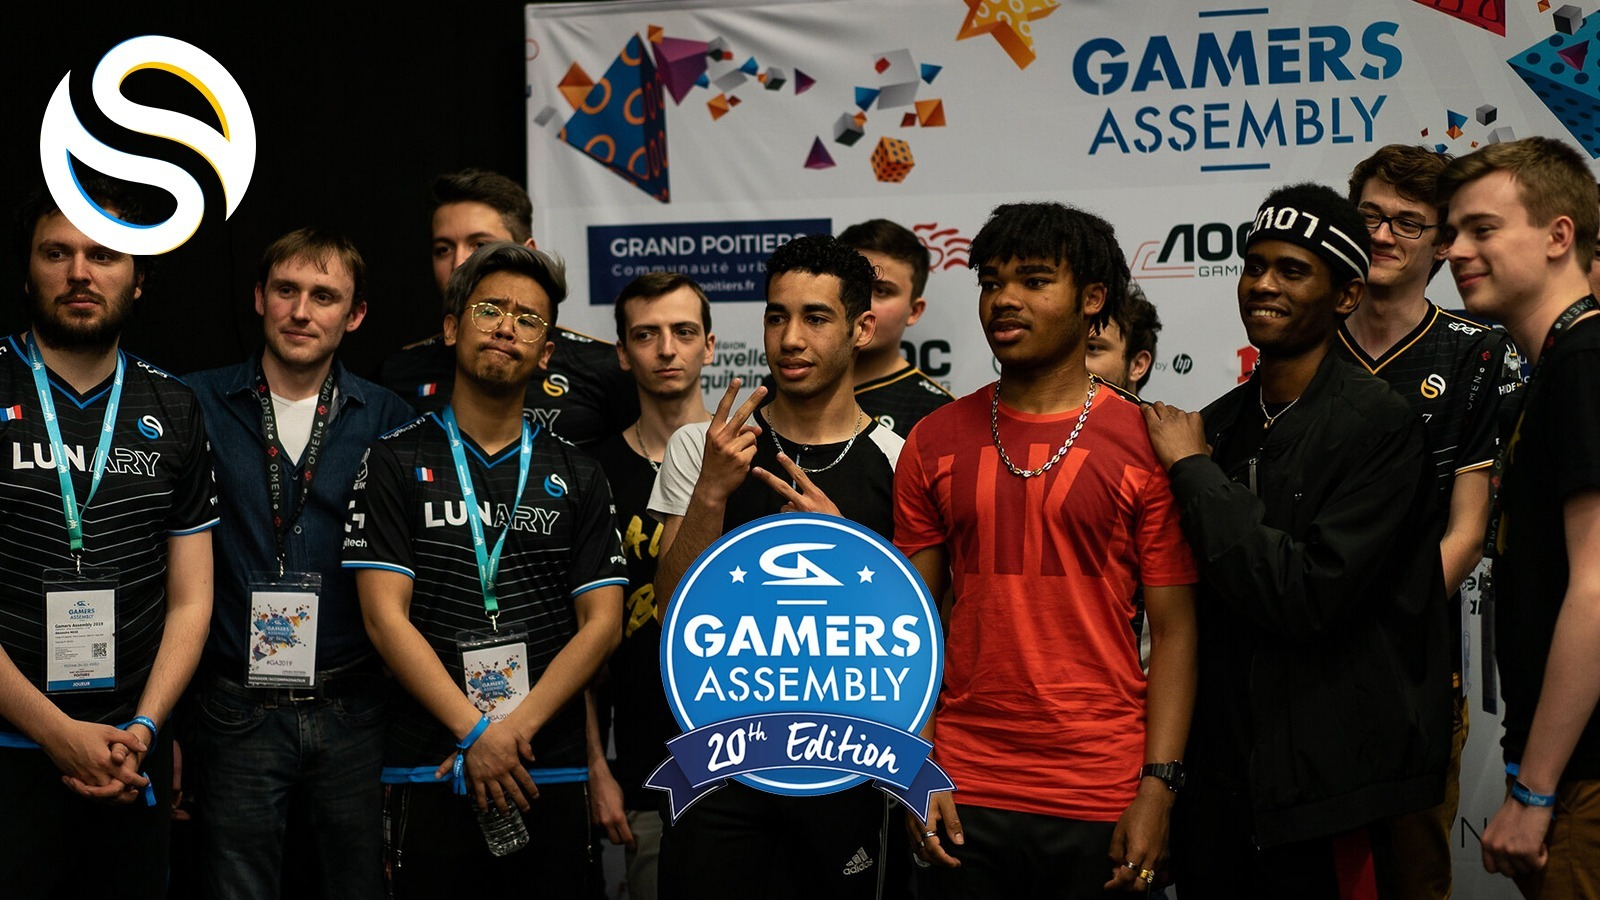 les-solary-a-la-gamers-assembly-2019